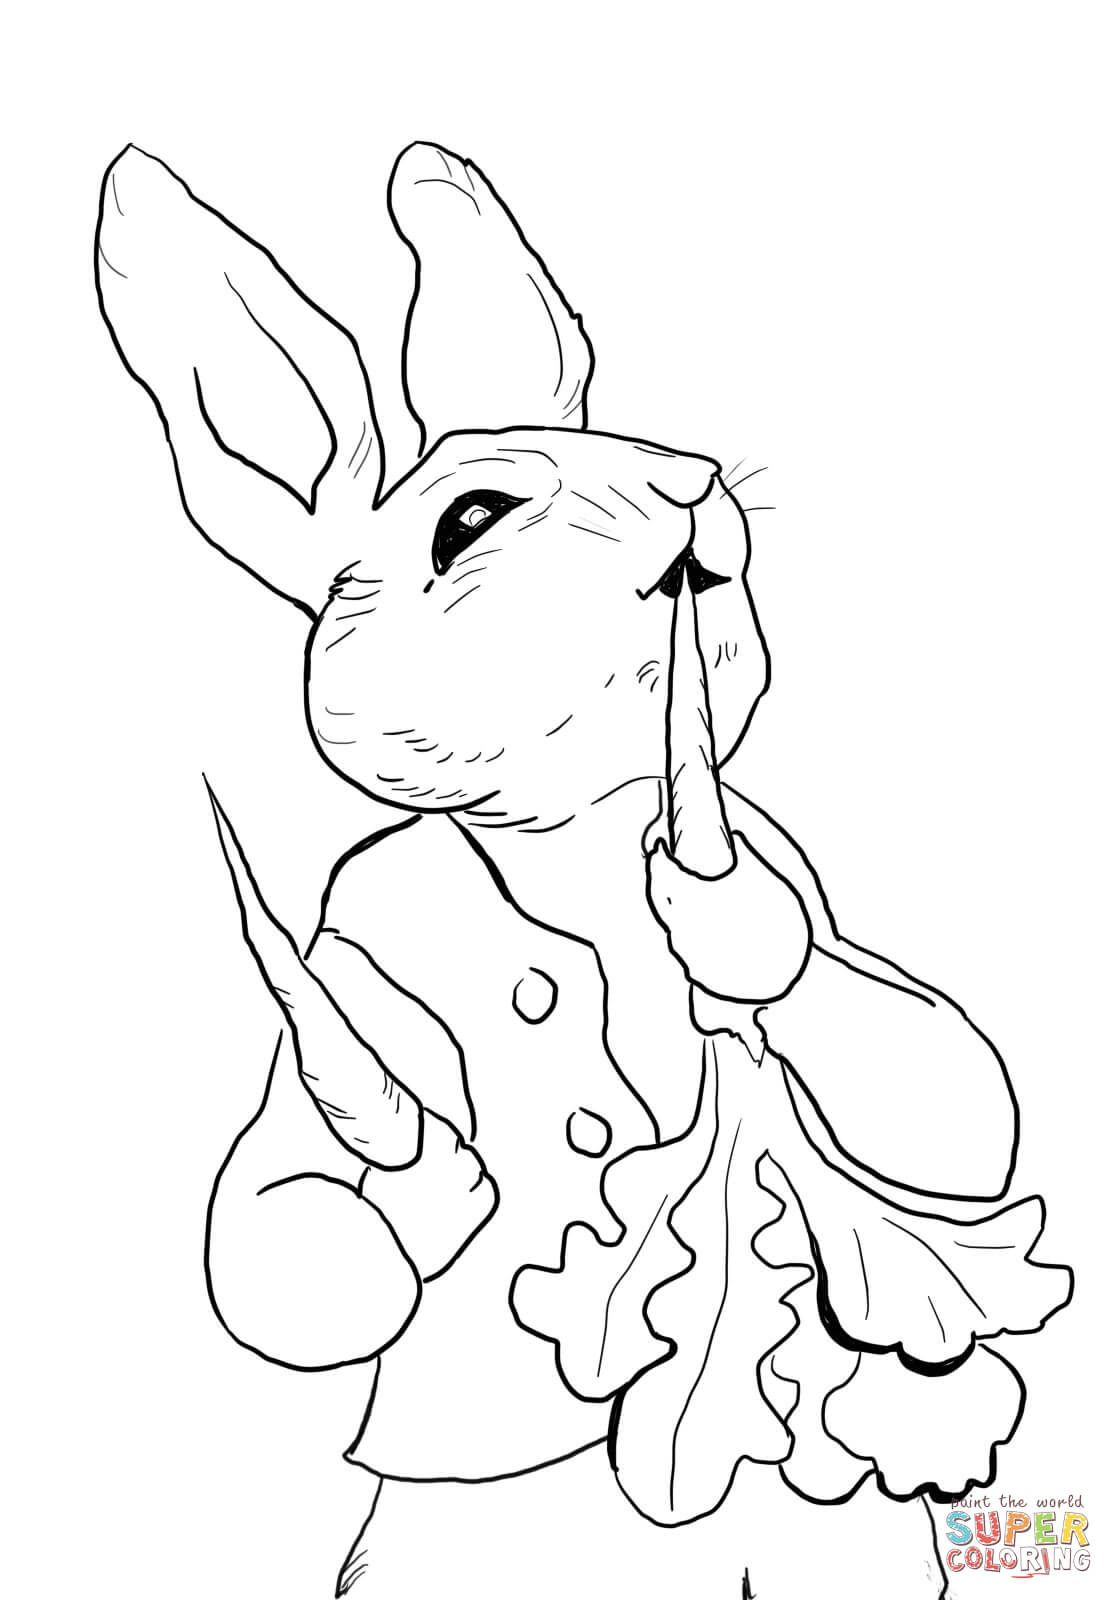 Rabbit coloring pages online - Peter Rabbit Eating Radishes Coloring Page Printable Peter Page